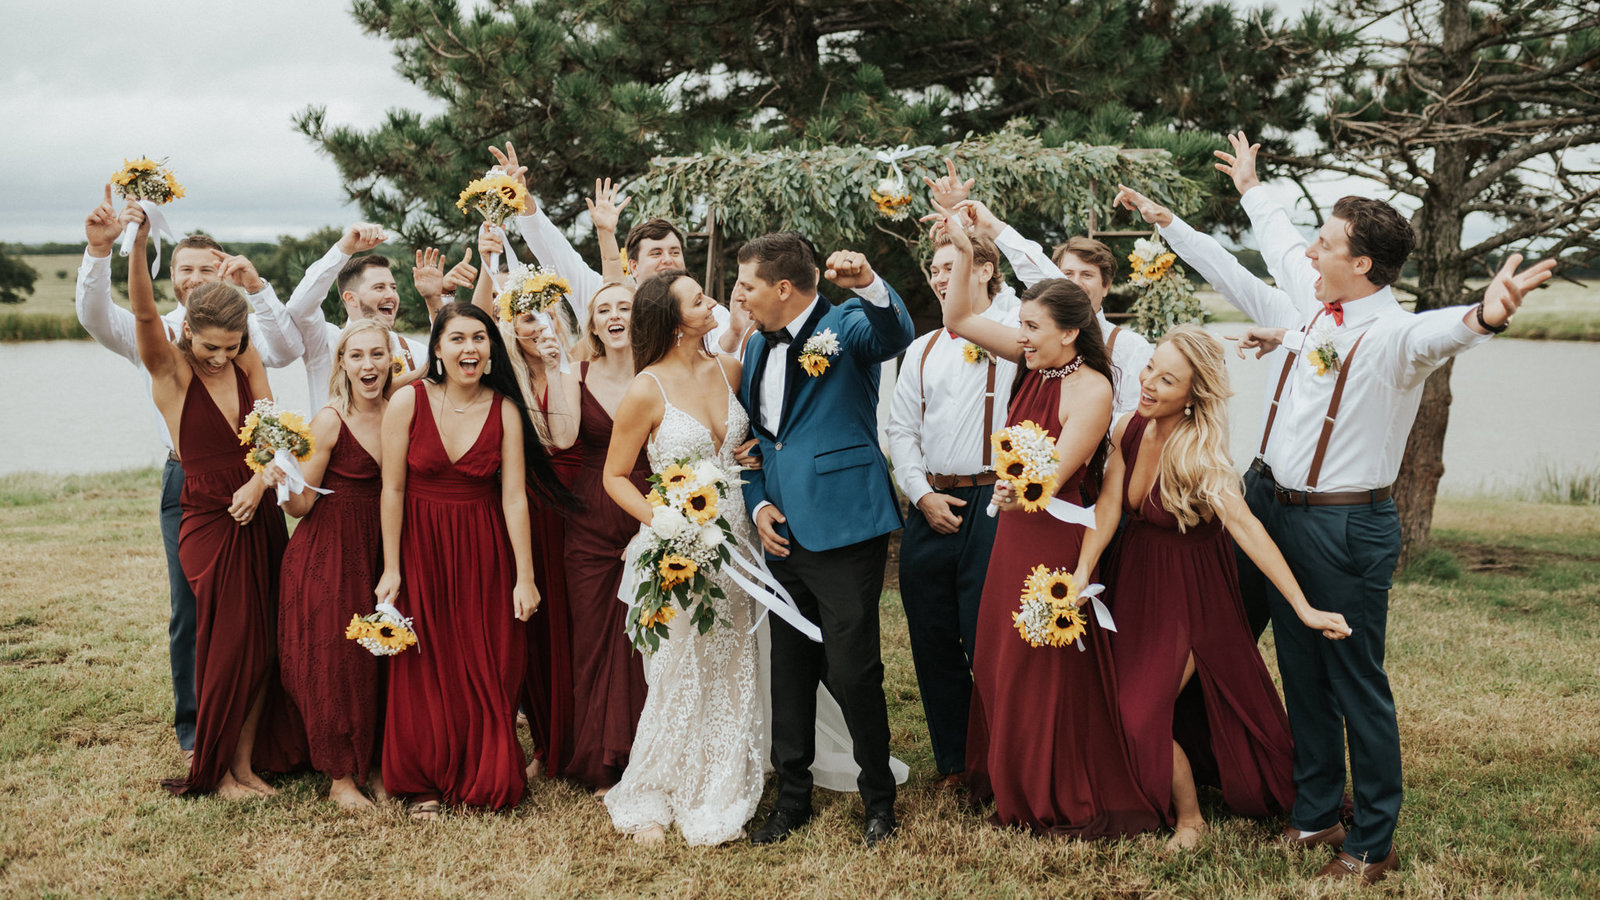 A bridal party cheering for the bride and groom at their backyard wedding.